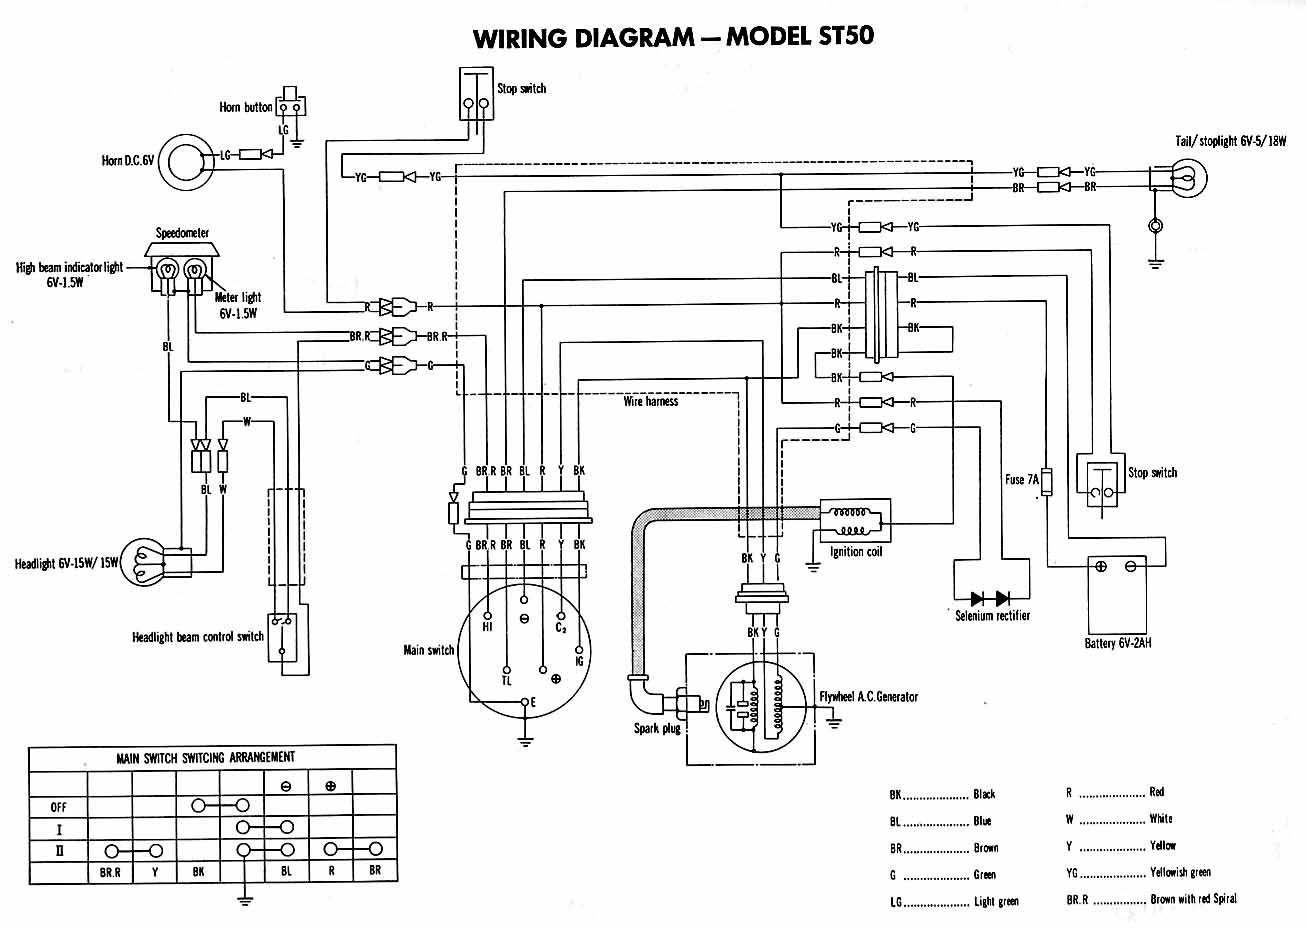 honda ss50 wiring diagram 4l60e documents